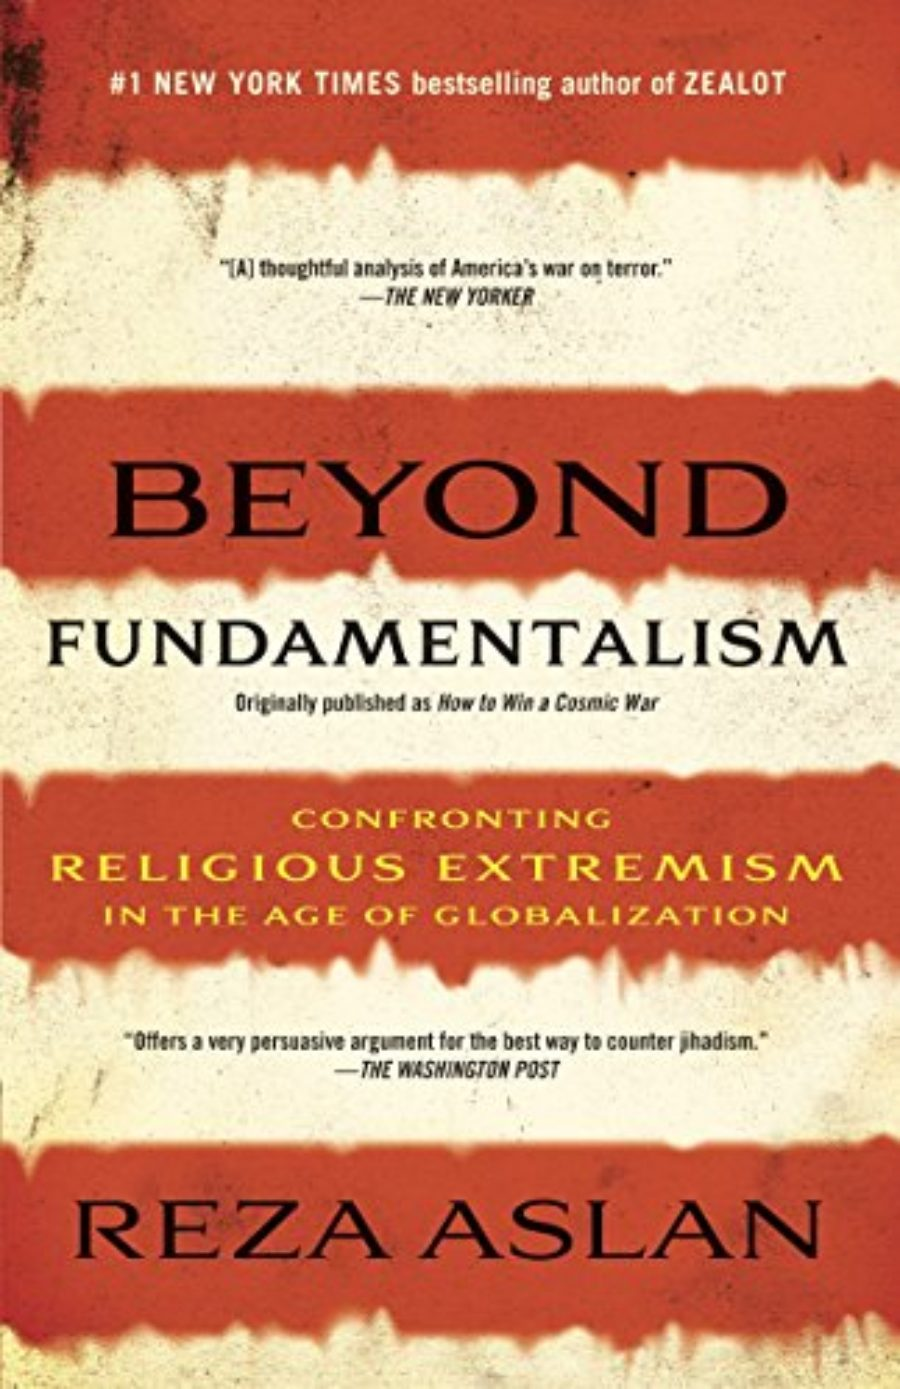 Cover of Beyond Fundamentalism: Confronting Religious Extremism in the Age of Globalization